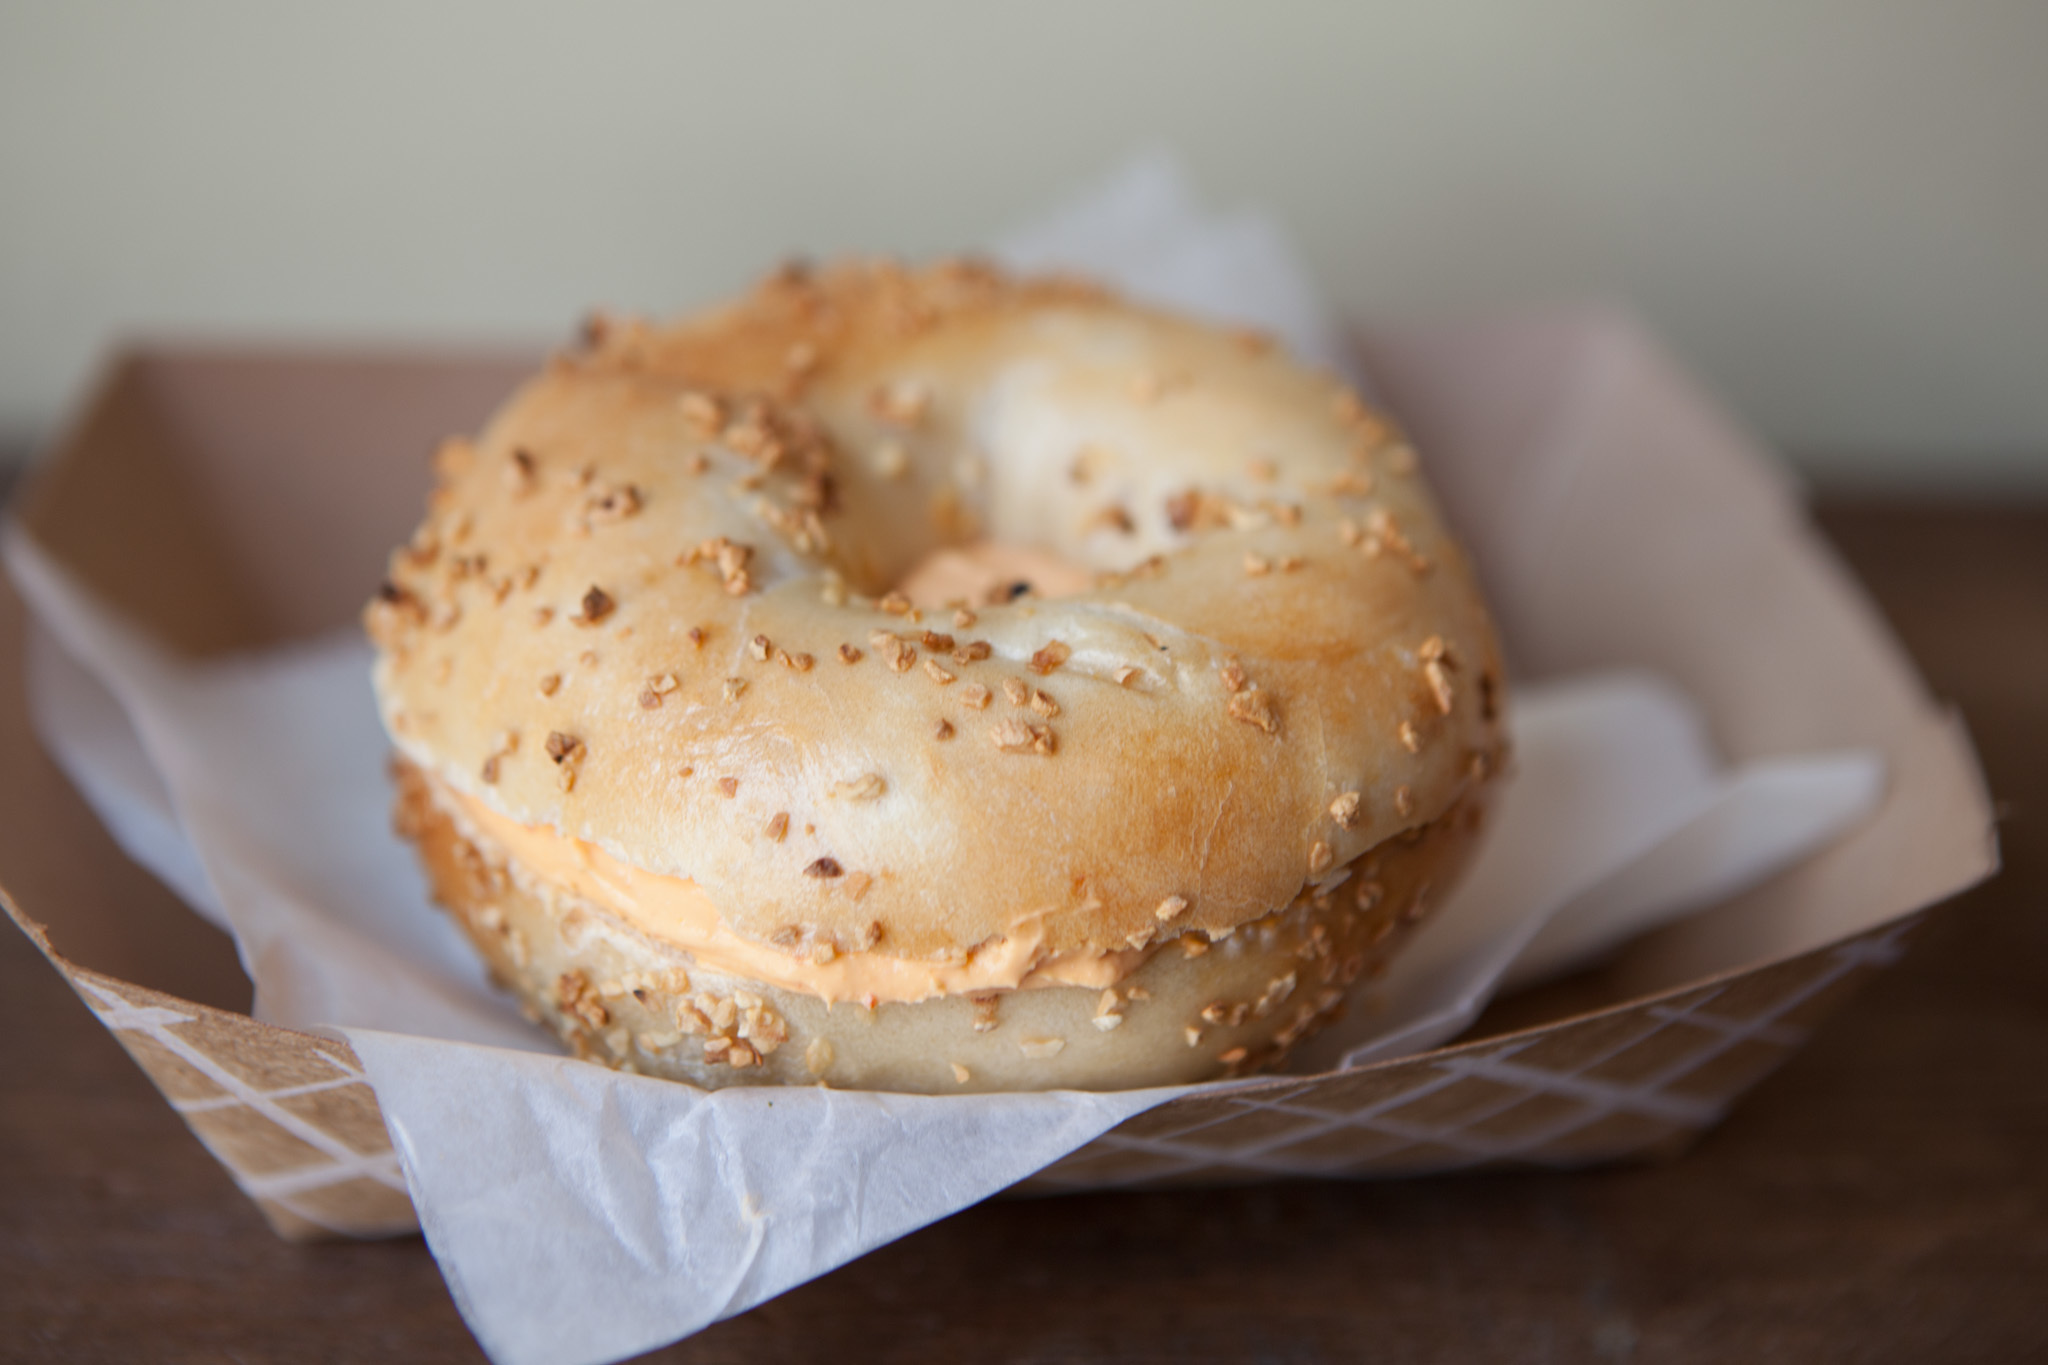 Garlic bagel with sriracha spread at Brobagel